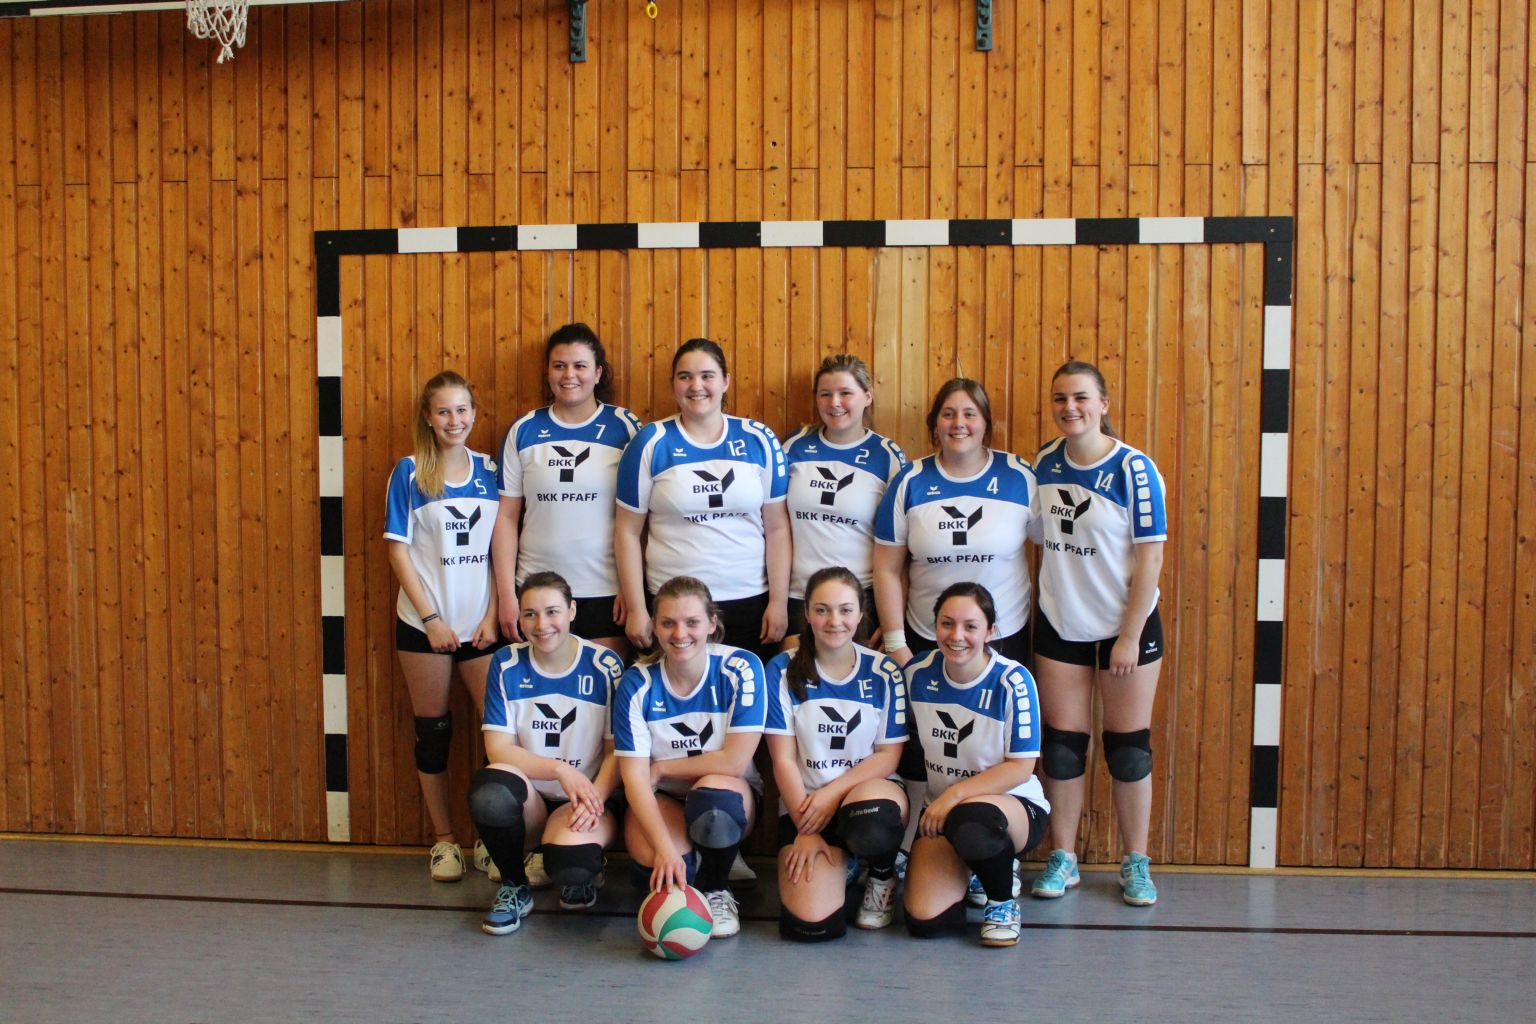 170325_Volleyball_IMG_4241